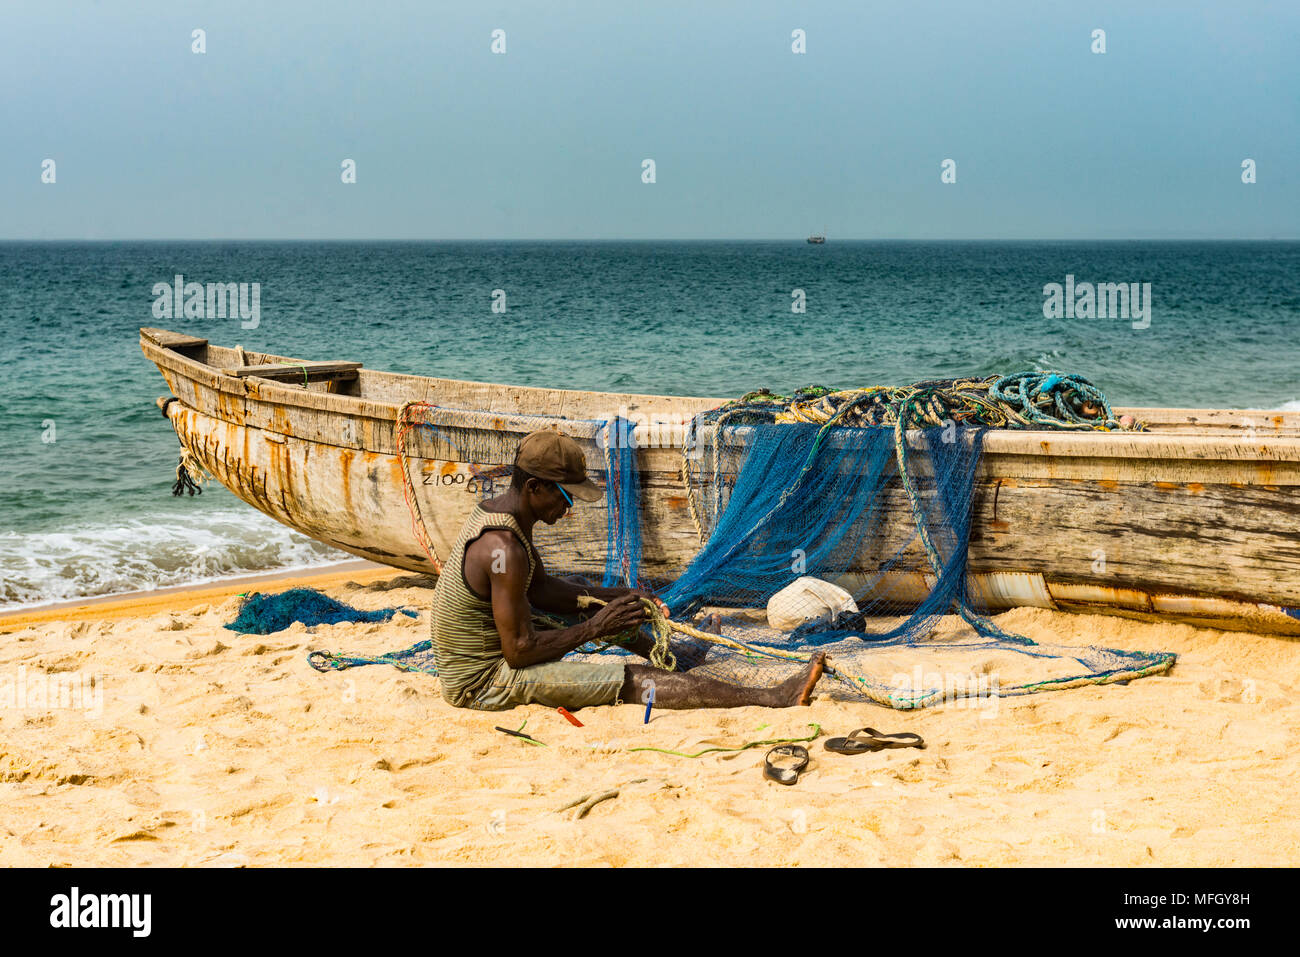 Man fixing their nets in their fishing boats on a beach in Robertsport, Liberia, West Africa, Africa - Stock Image